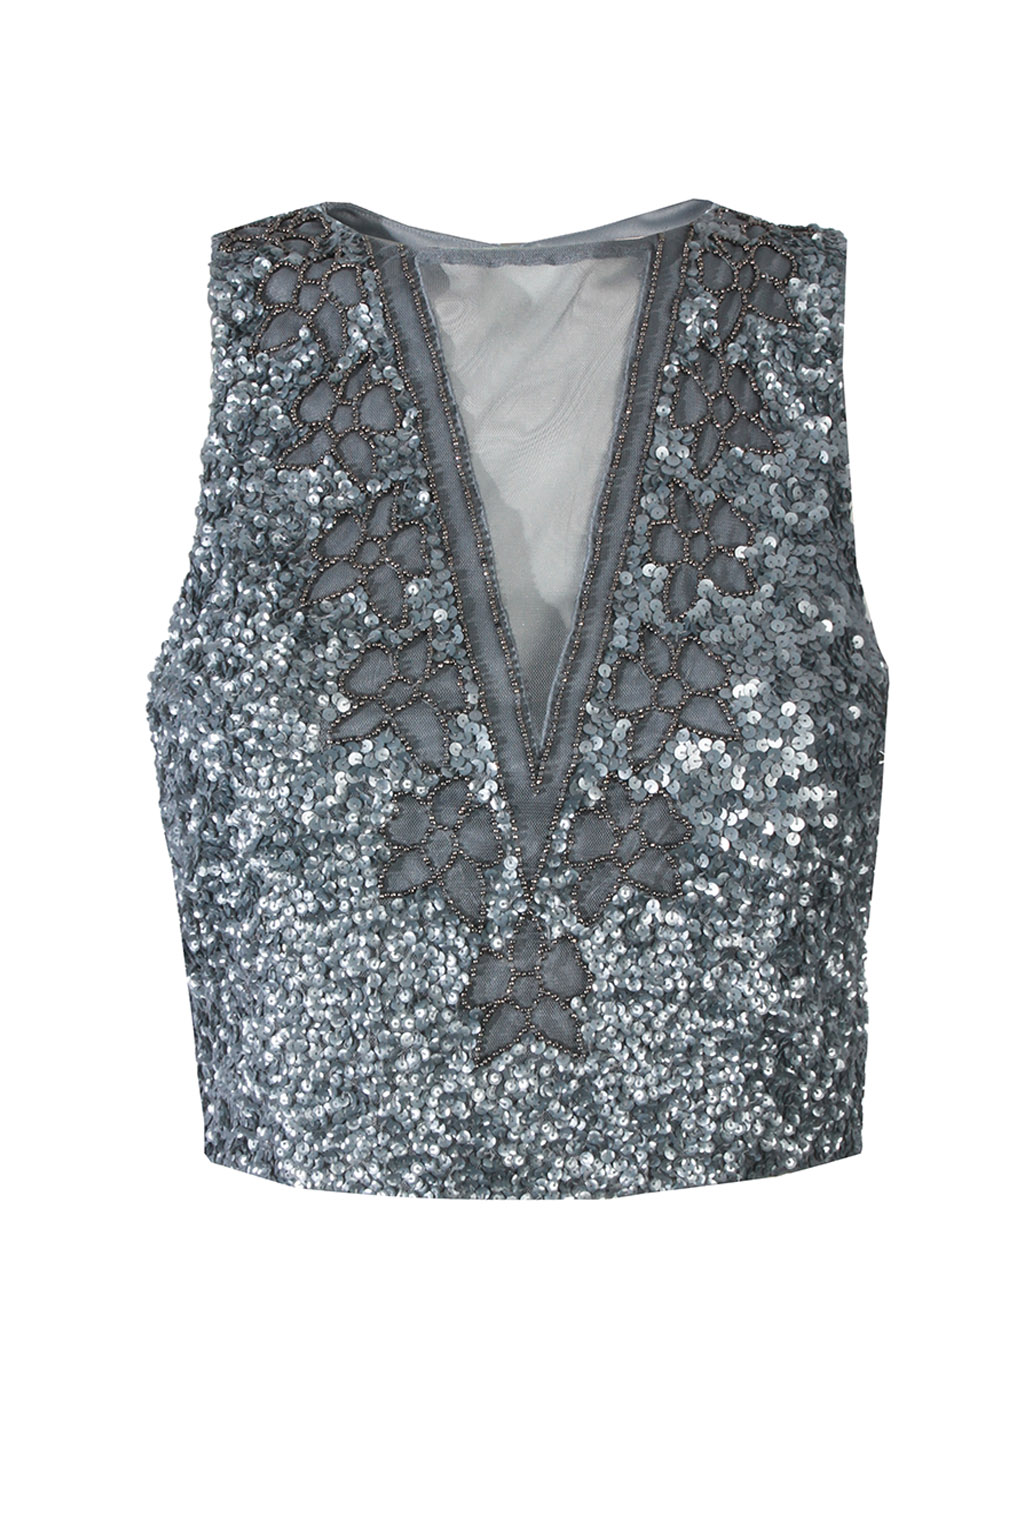 Image of Lace & Beads Anastasia Blue Top